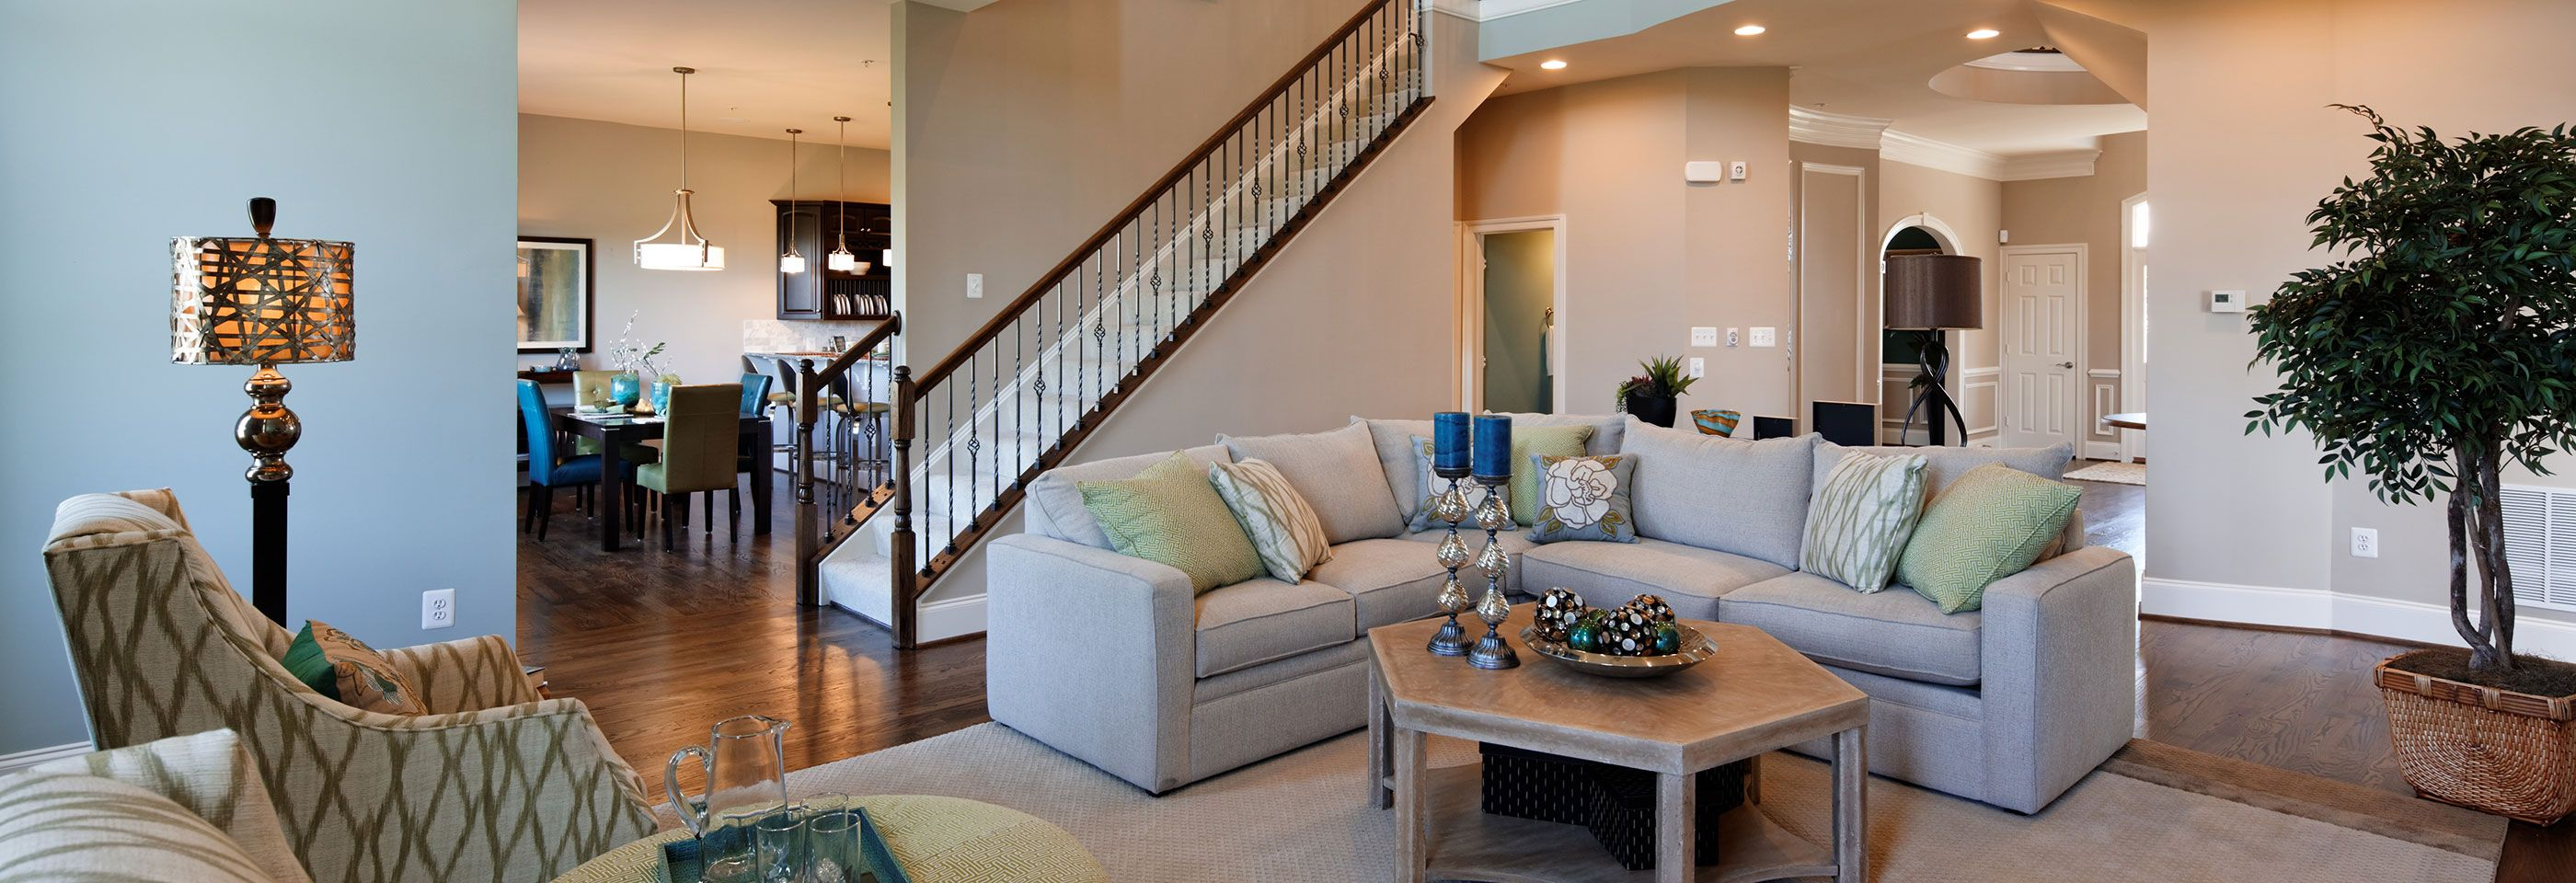 The Kenwood; The Preserve At Woodmore By Craftmark Homes, 20721 ...